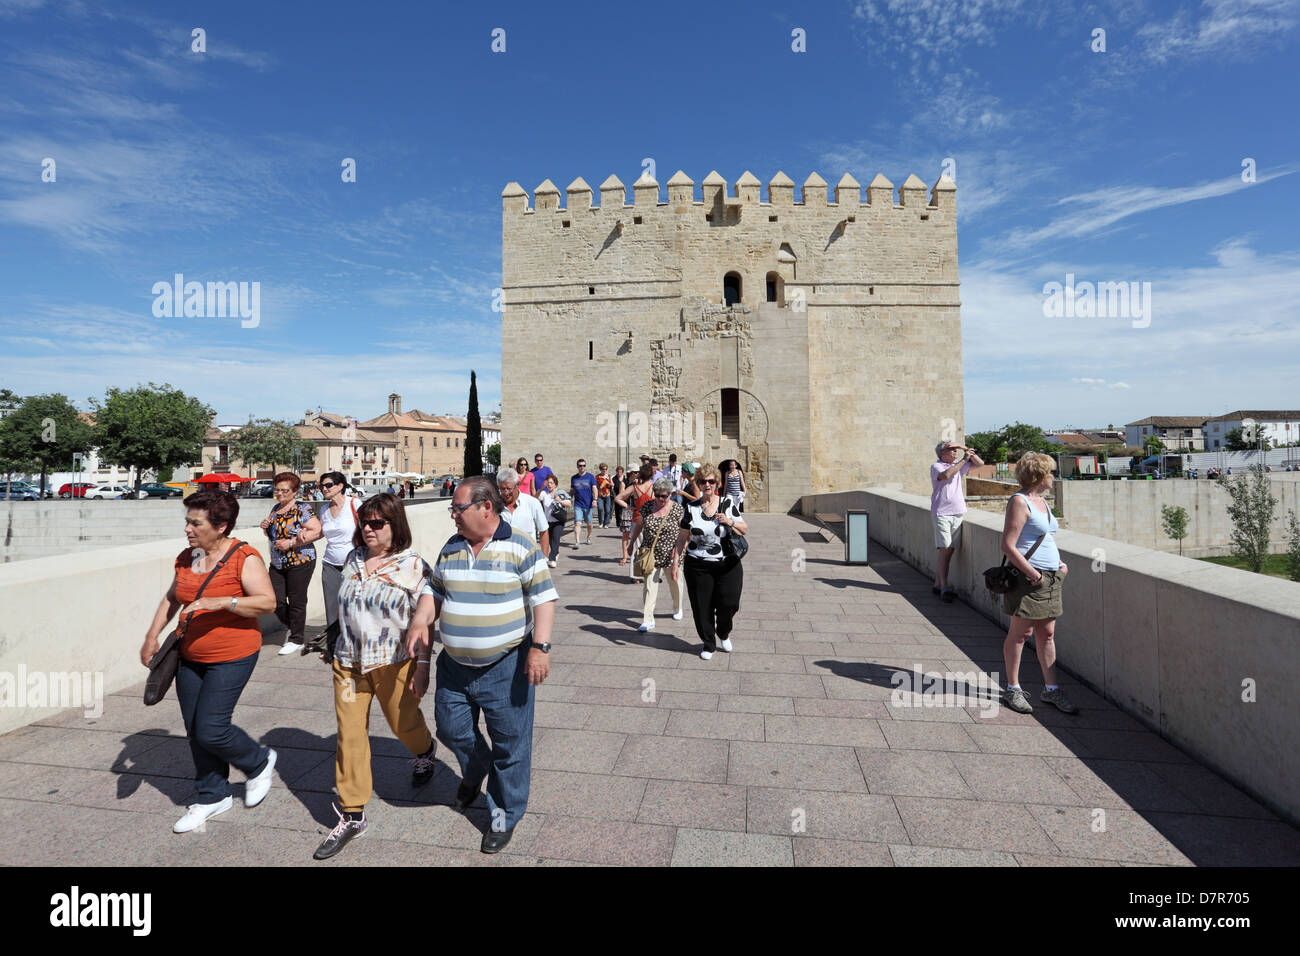 Tourists on the ancient bridge with tower - Torre de la Calahorra in background. Cordoba, Andalusia Spain - Stock Image